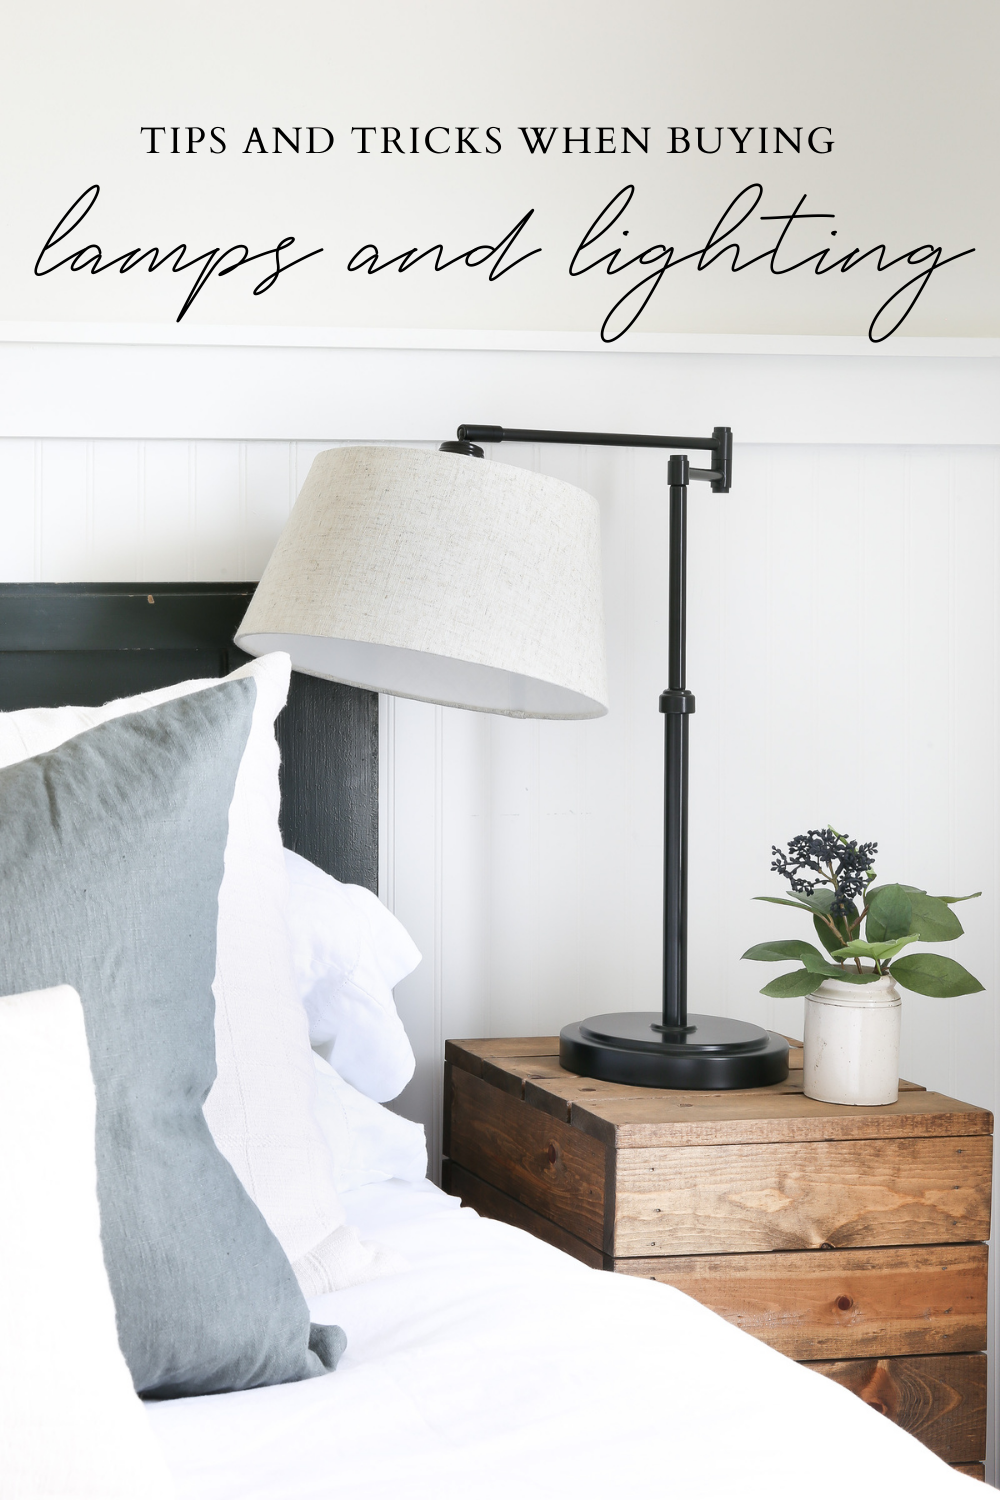 Tips and tricks when buying lamps and lighting